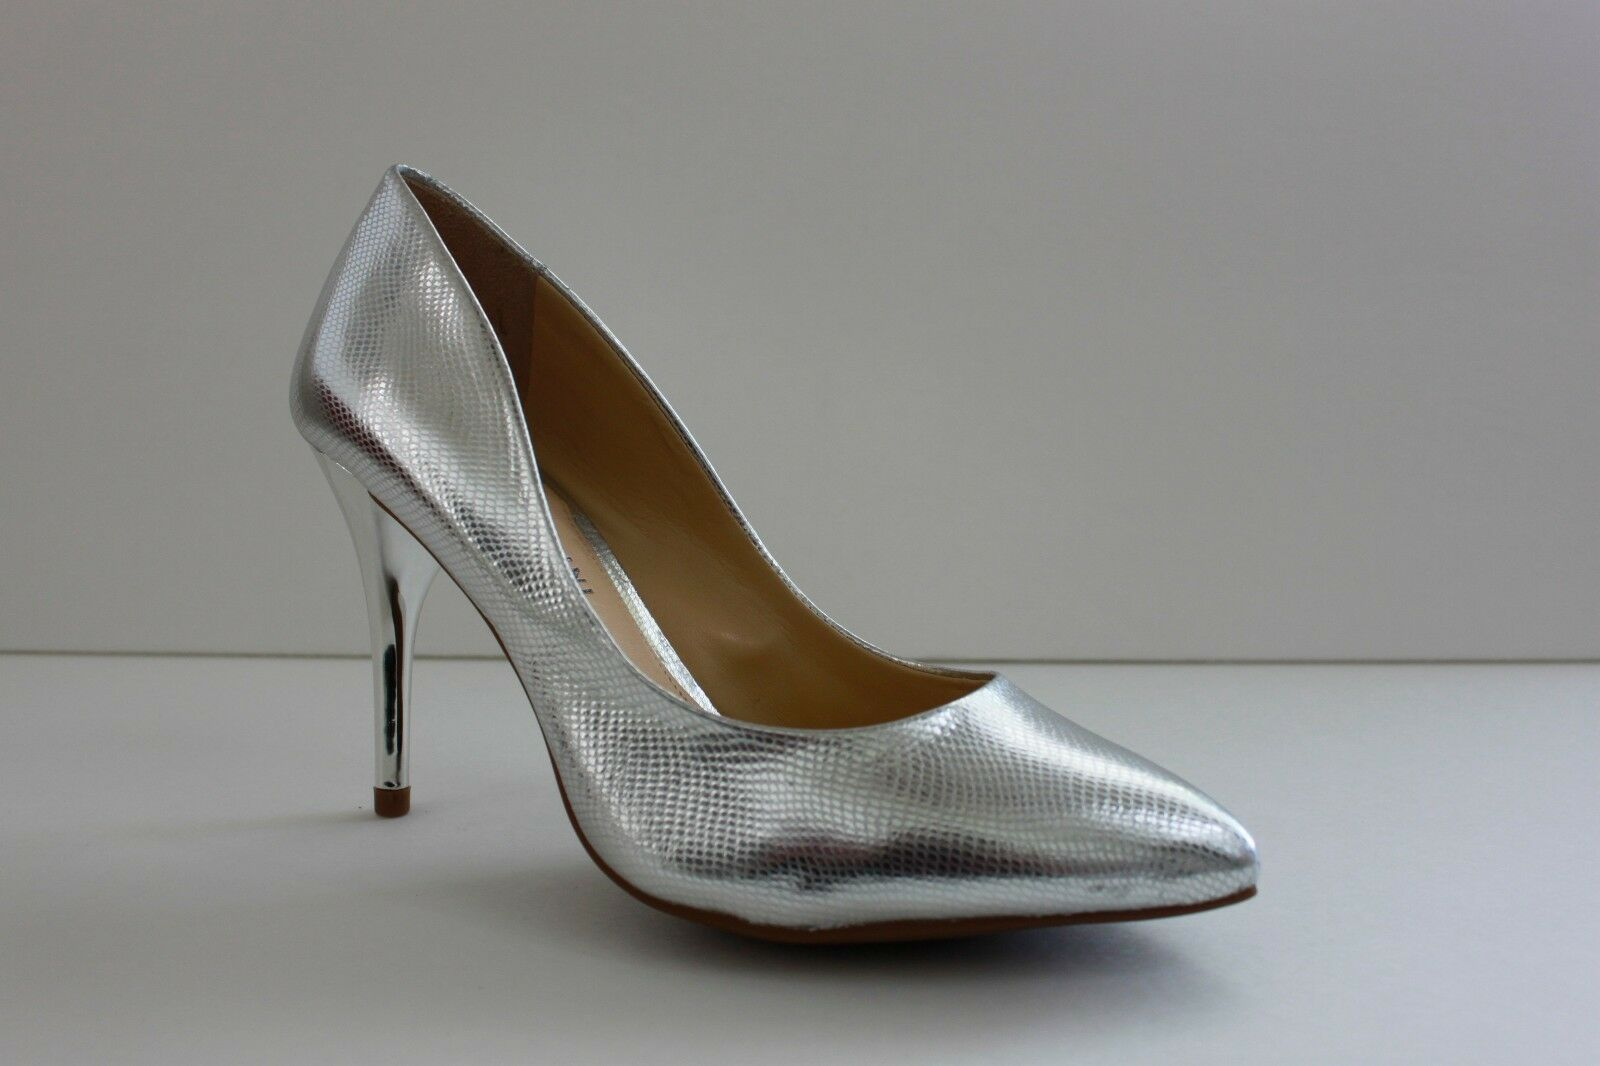 Gianni Bini Womens Heels shoes Size 6.5 M Silver Leather Snake Pointed Toe Pumps